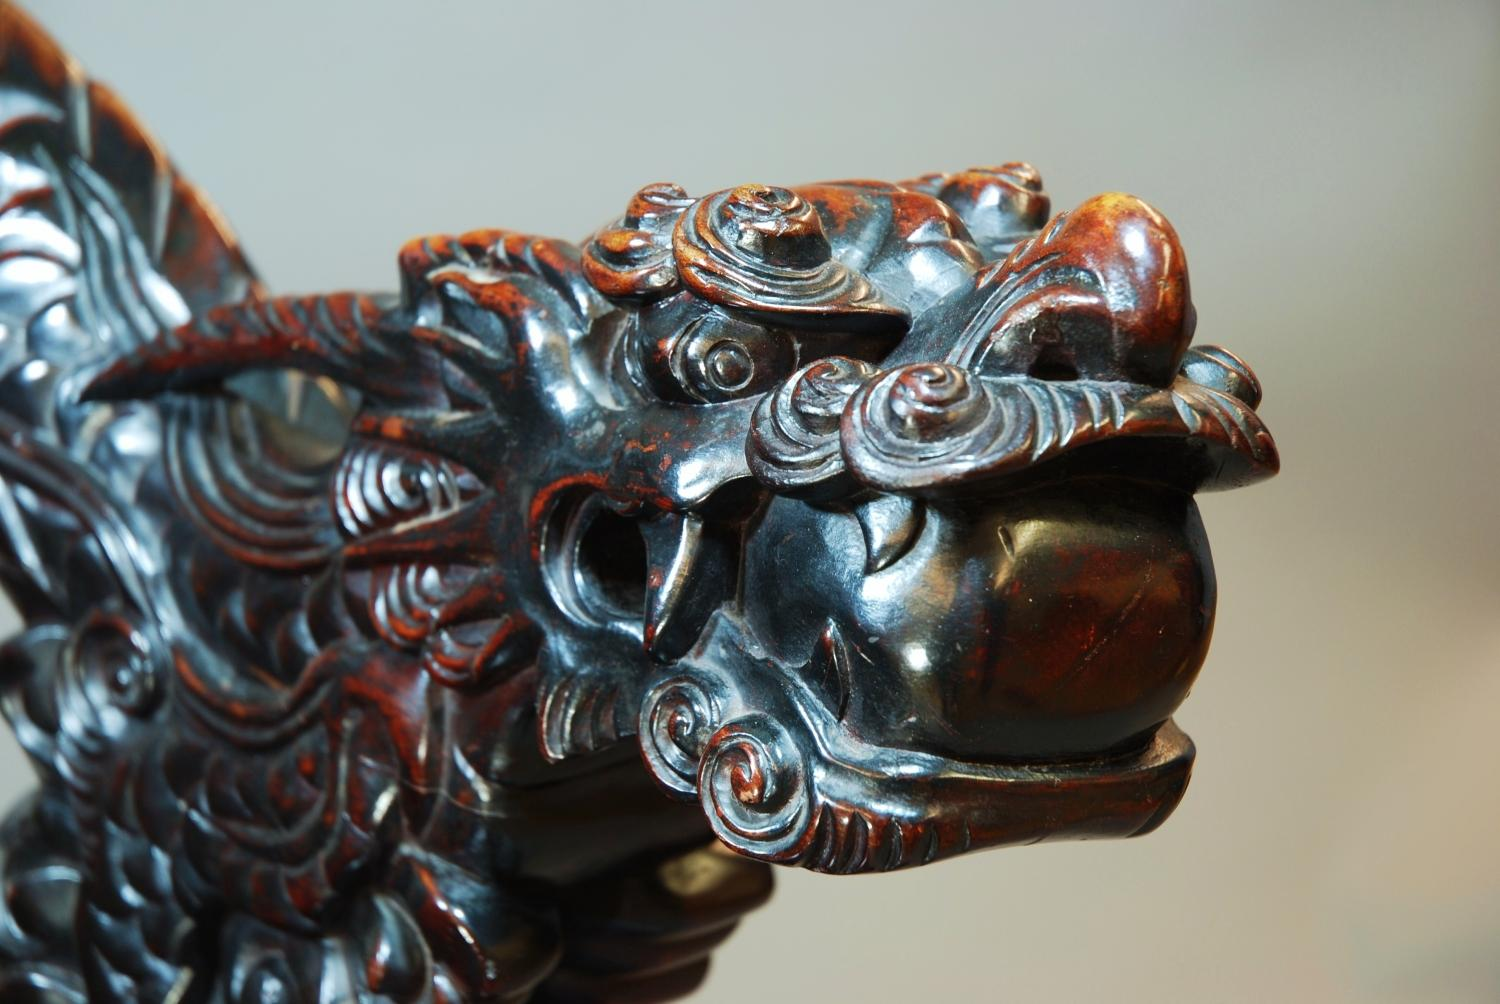 ... Pair of heavily carved Chinese dragon chairs - picture 4 ... - Pair Of Heavily Carved Chinese Dragon Chairs In SOLD ARCHIVE